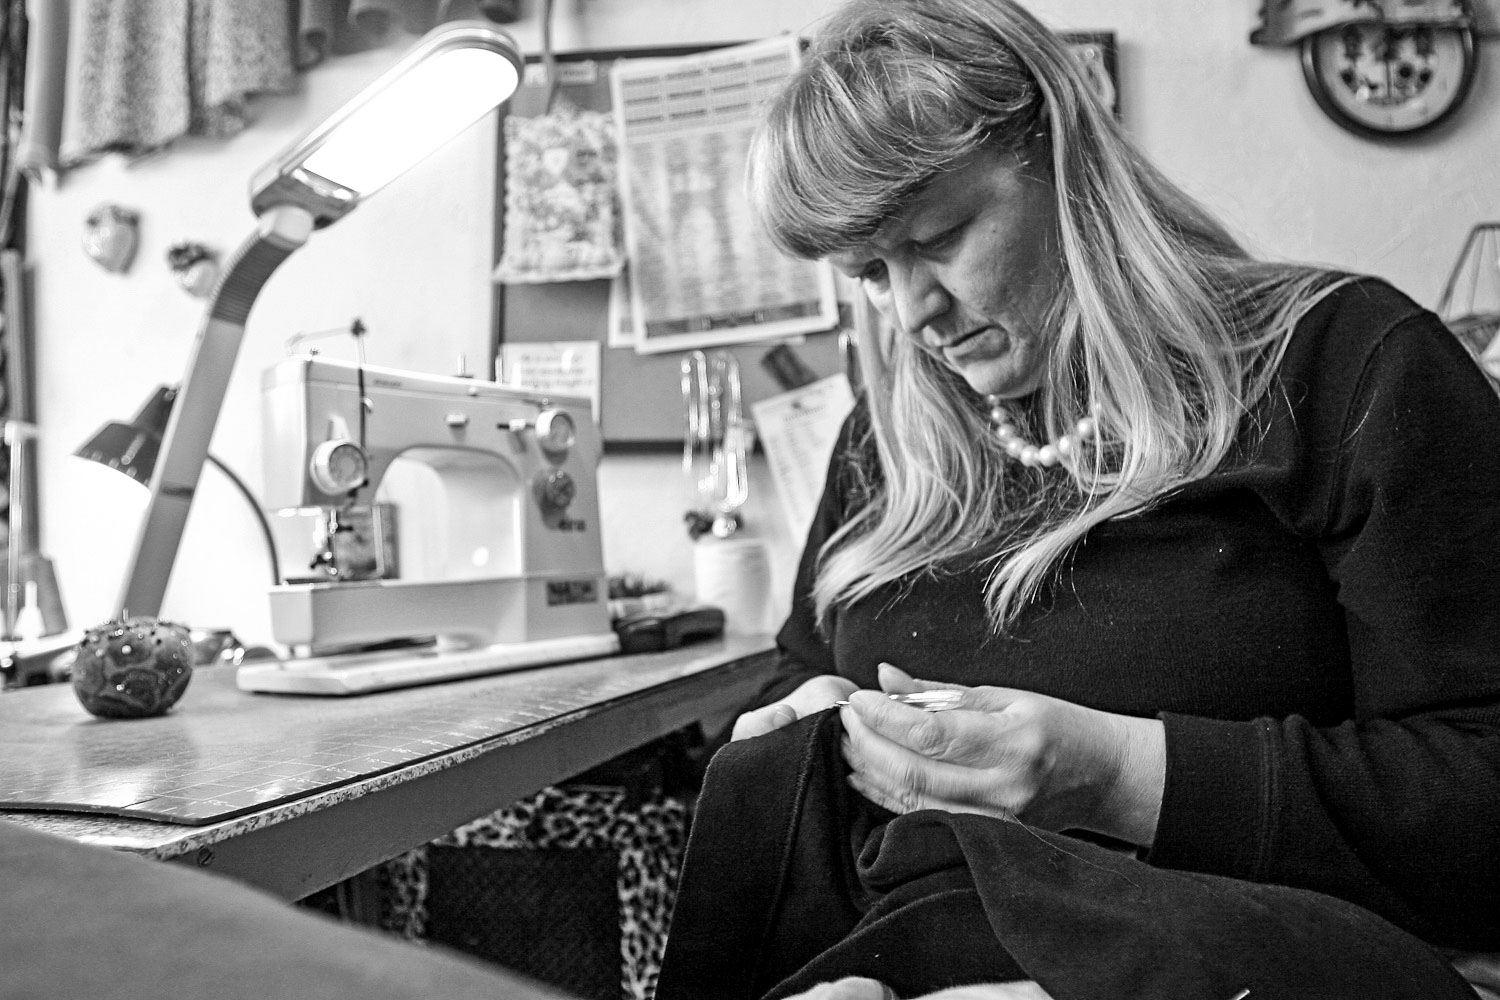 Kitch and Stitch owner at work in portland oregon